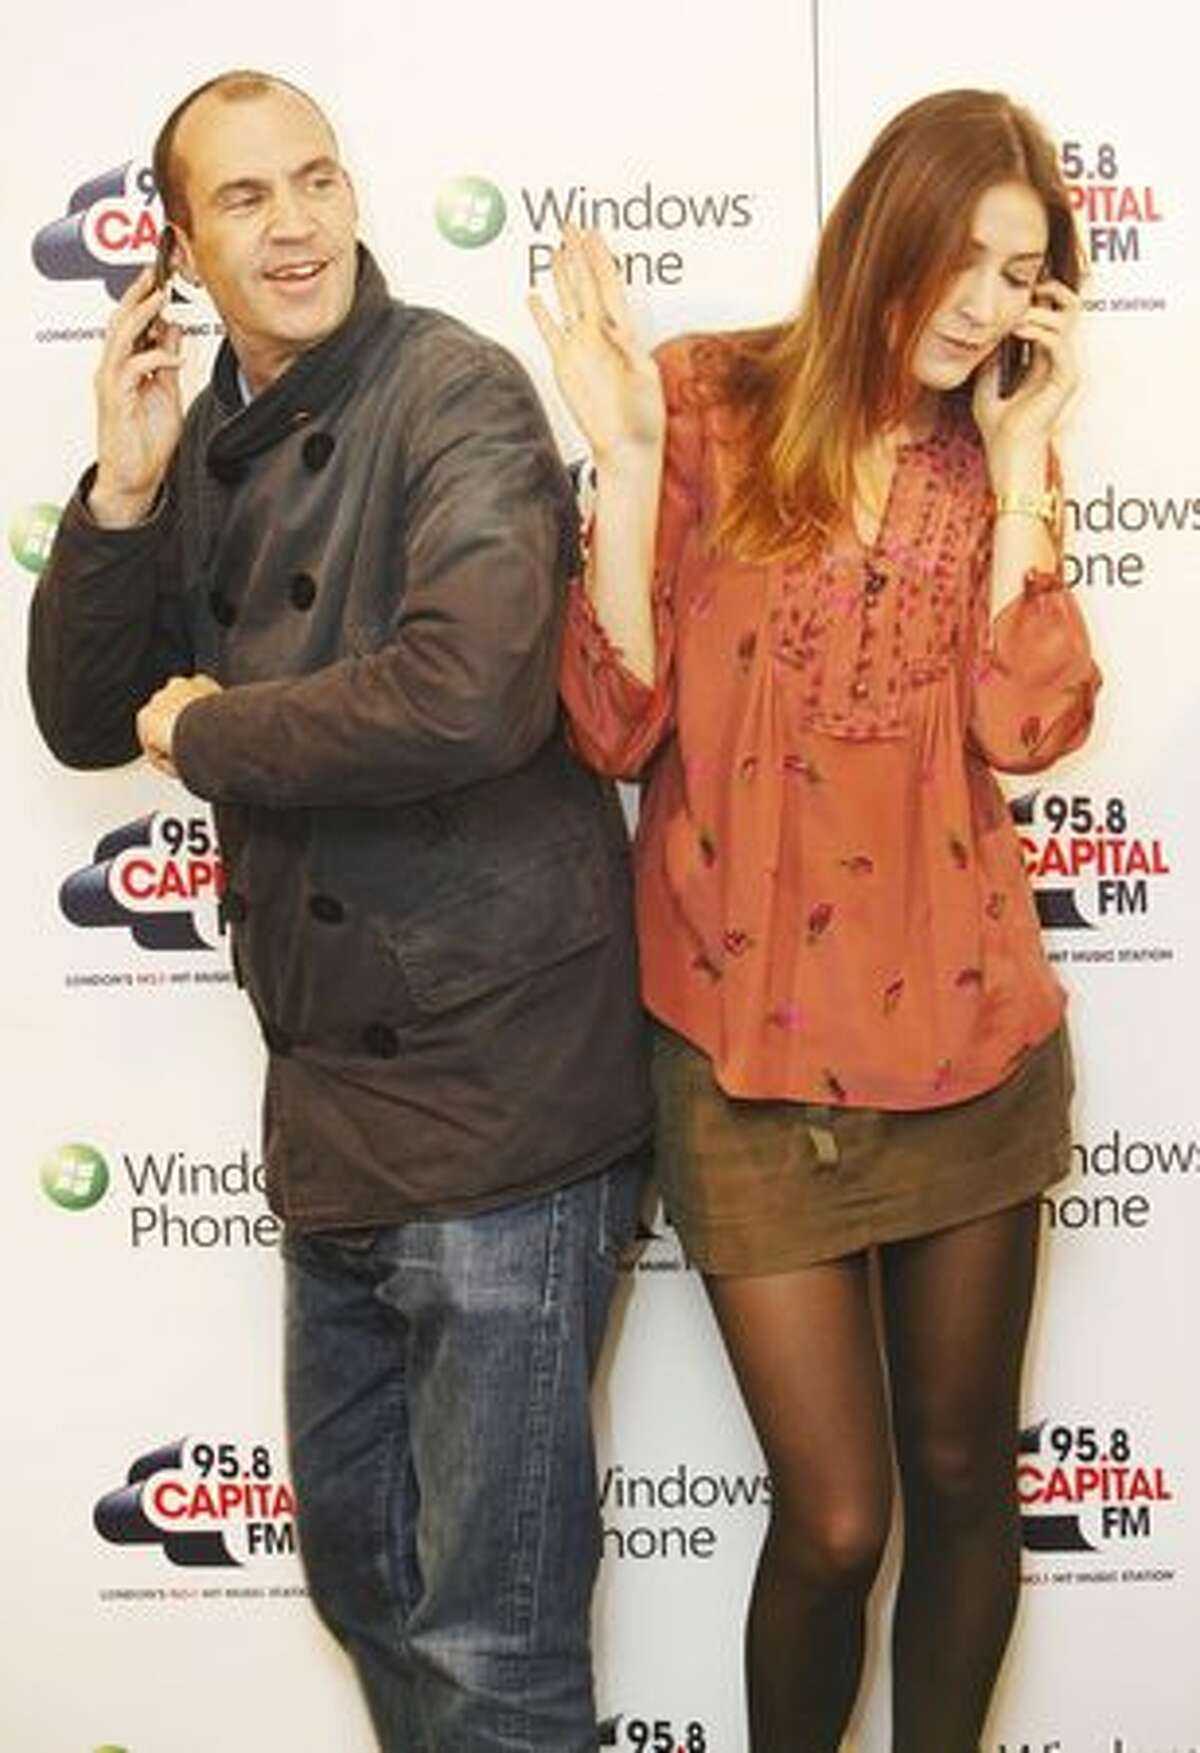 English broadcaster Johnny Vaughan and model Lisa Snowdon, from Capital FM, test out their new Windows Phone 7 devices at the Microsoft launch in the Orange Shop Oxford Street on Thursday in London. (David Parry/PA Wire)